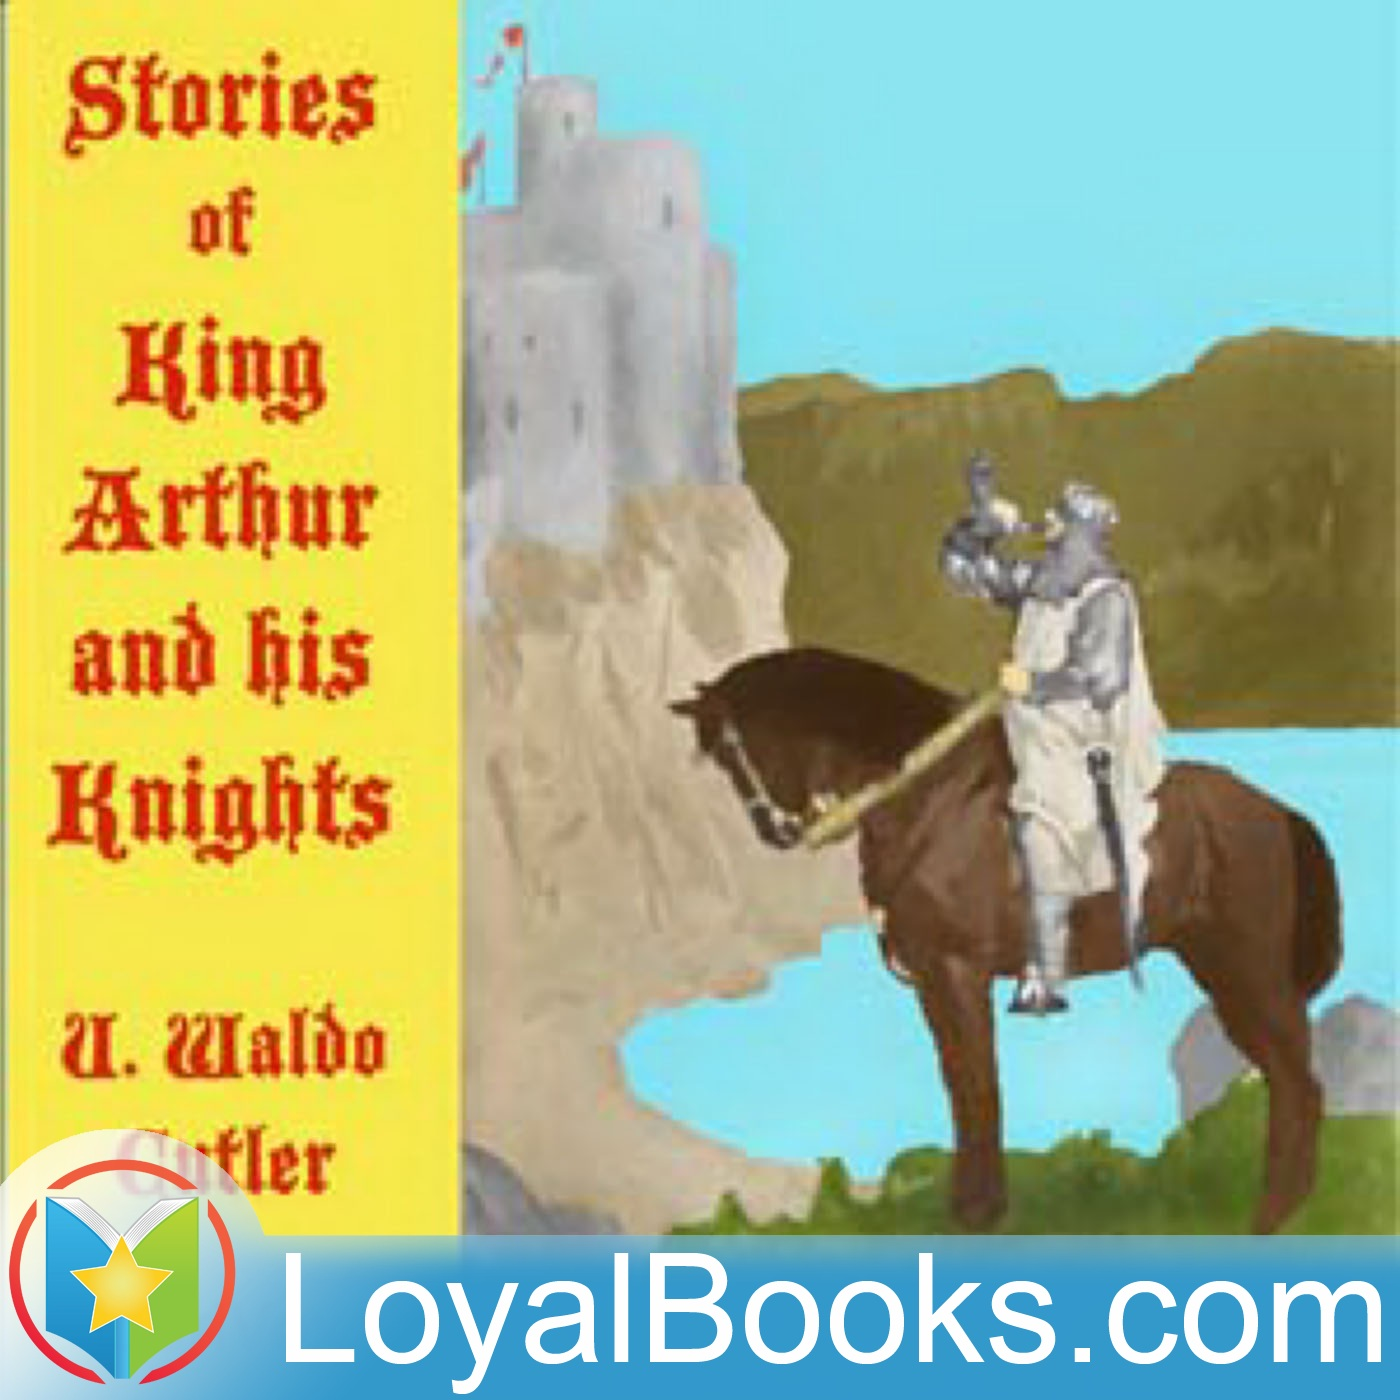 <![CDATA[Stories of King Arthur and His Knights by U. Waldo Cutler]]>